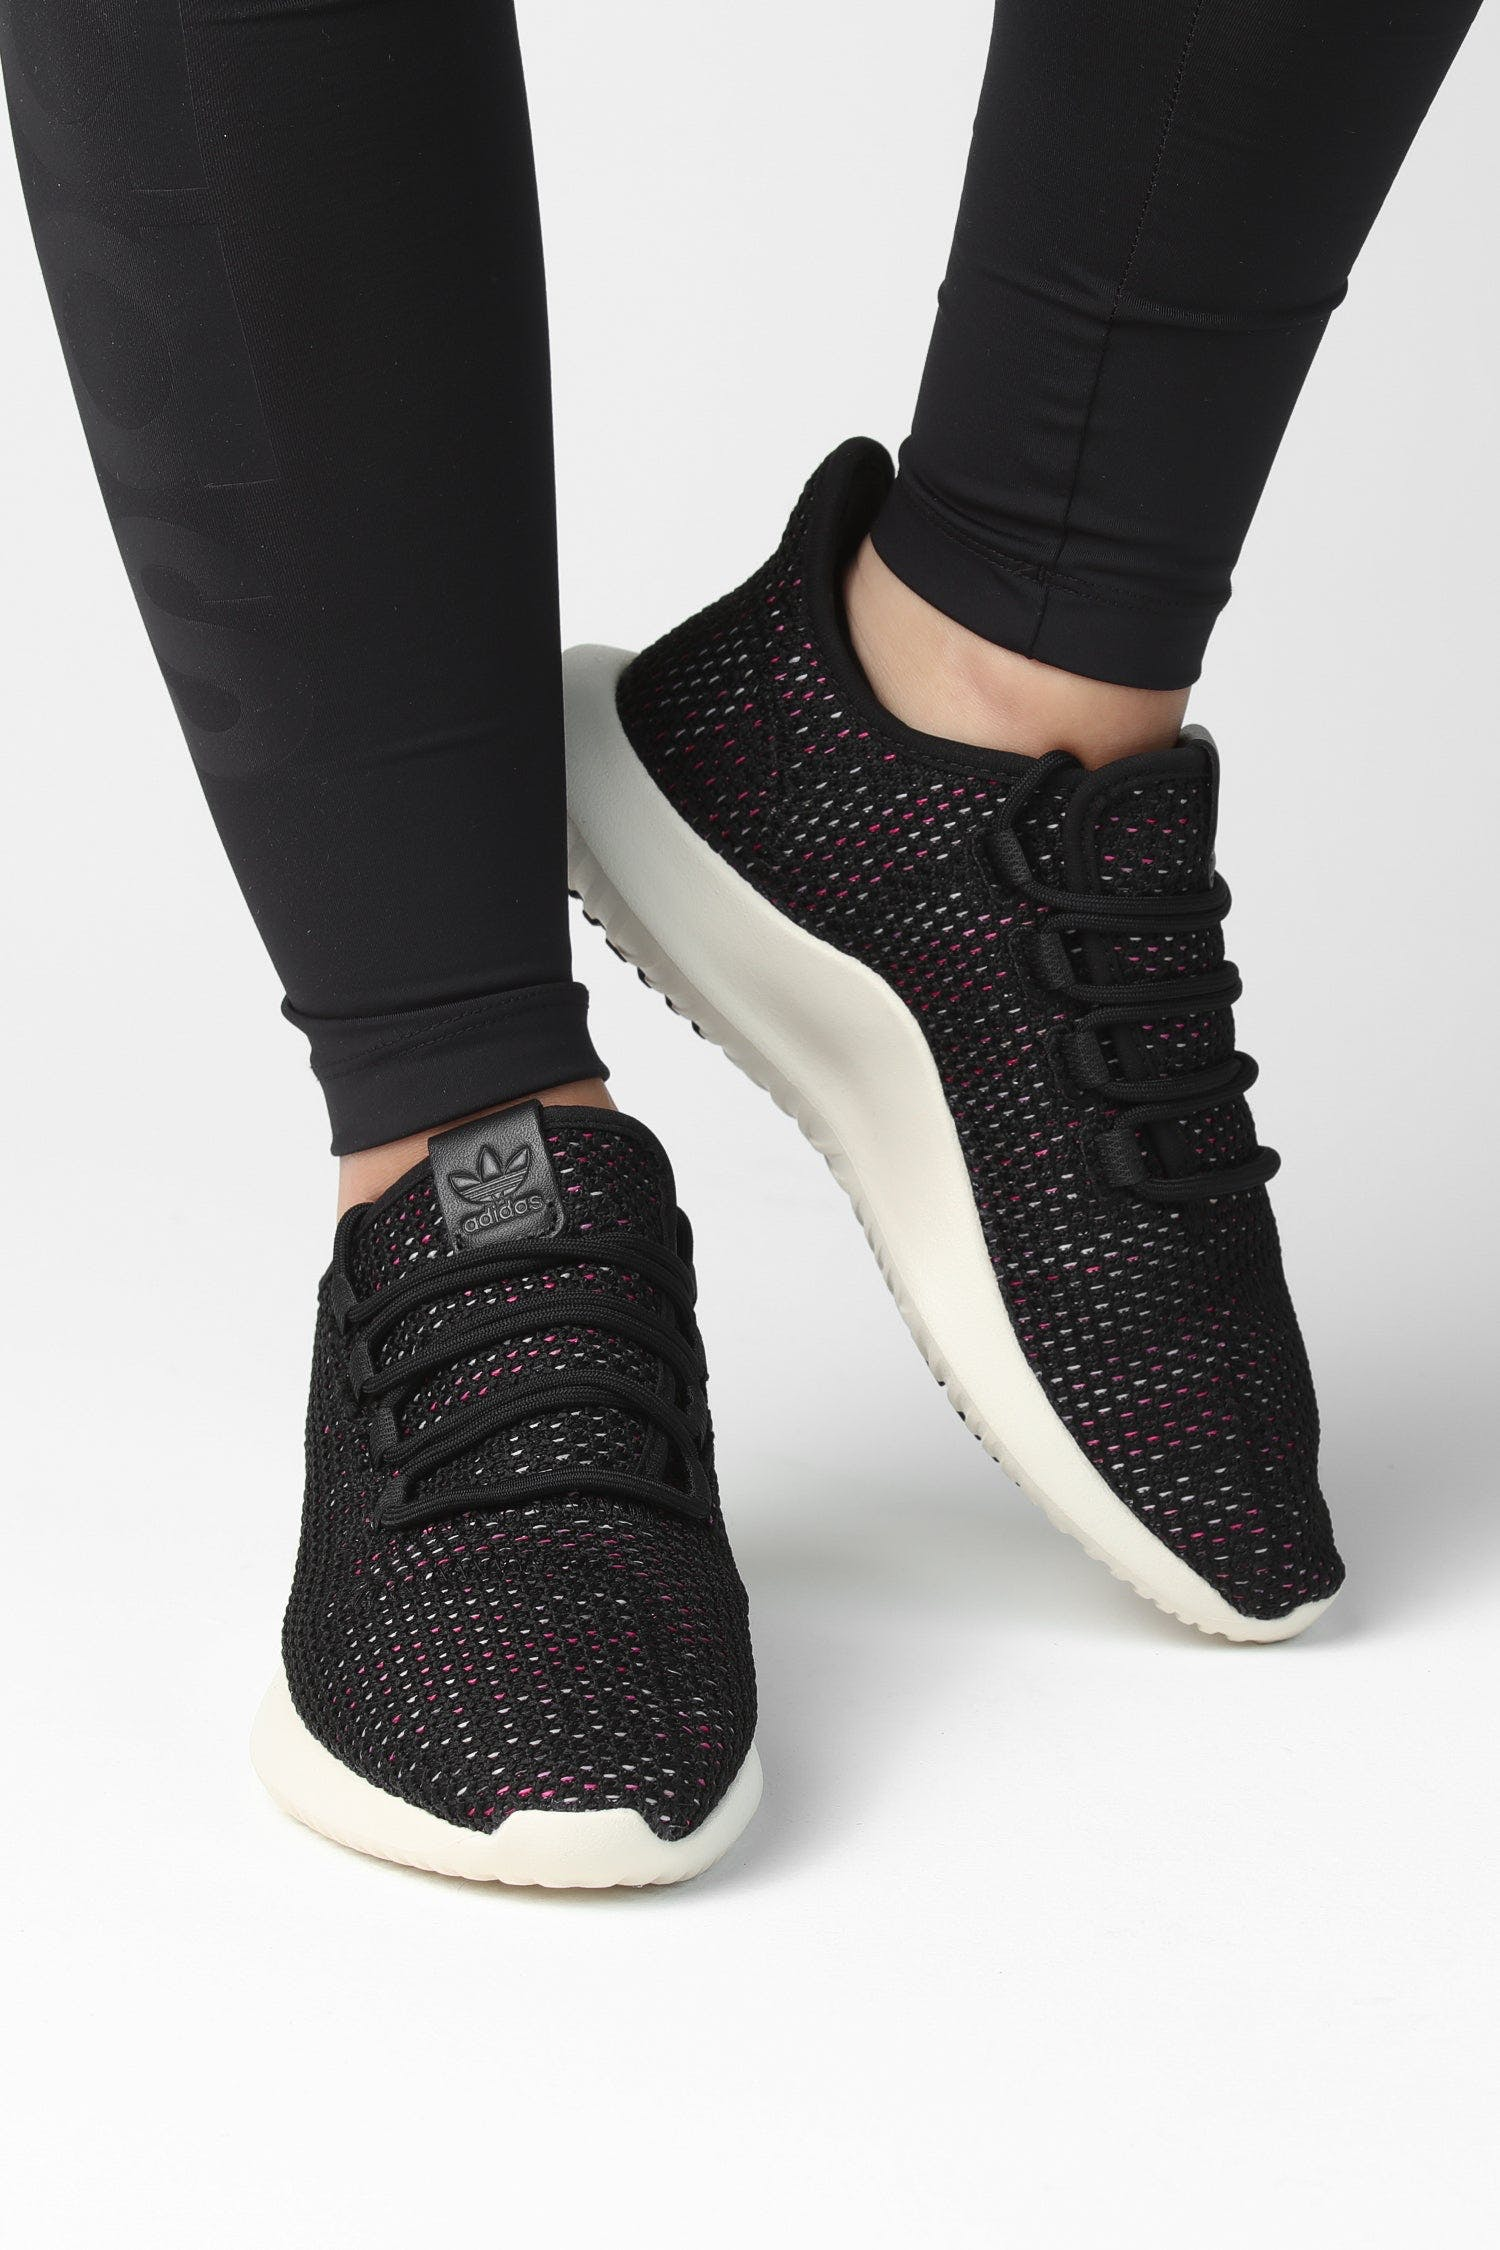 Sin cabeza a pesar de Necesario  Adidas Originals Women's Tubular Shadow CK Black/White/Multi | Culture Kings